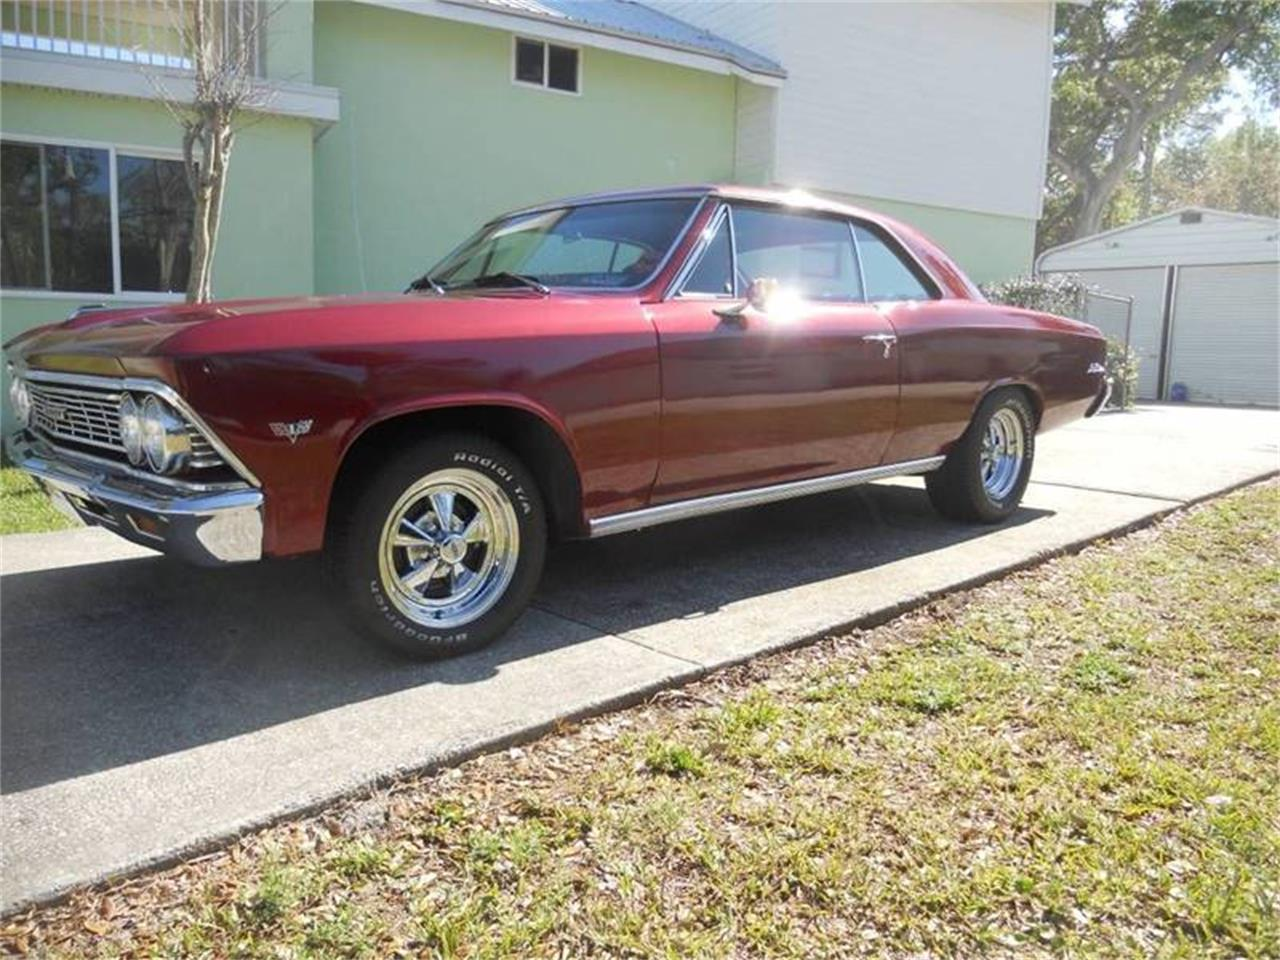 1966 Chevrolet Chevelle Malibu (CC-1162100) for sale in Sadler, Texas